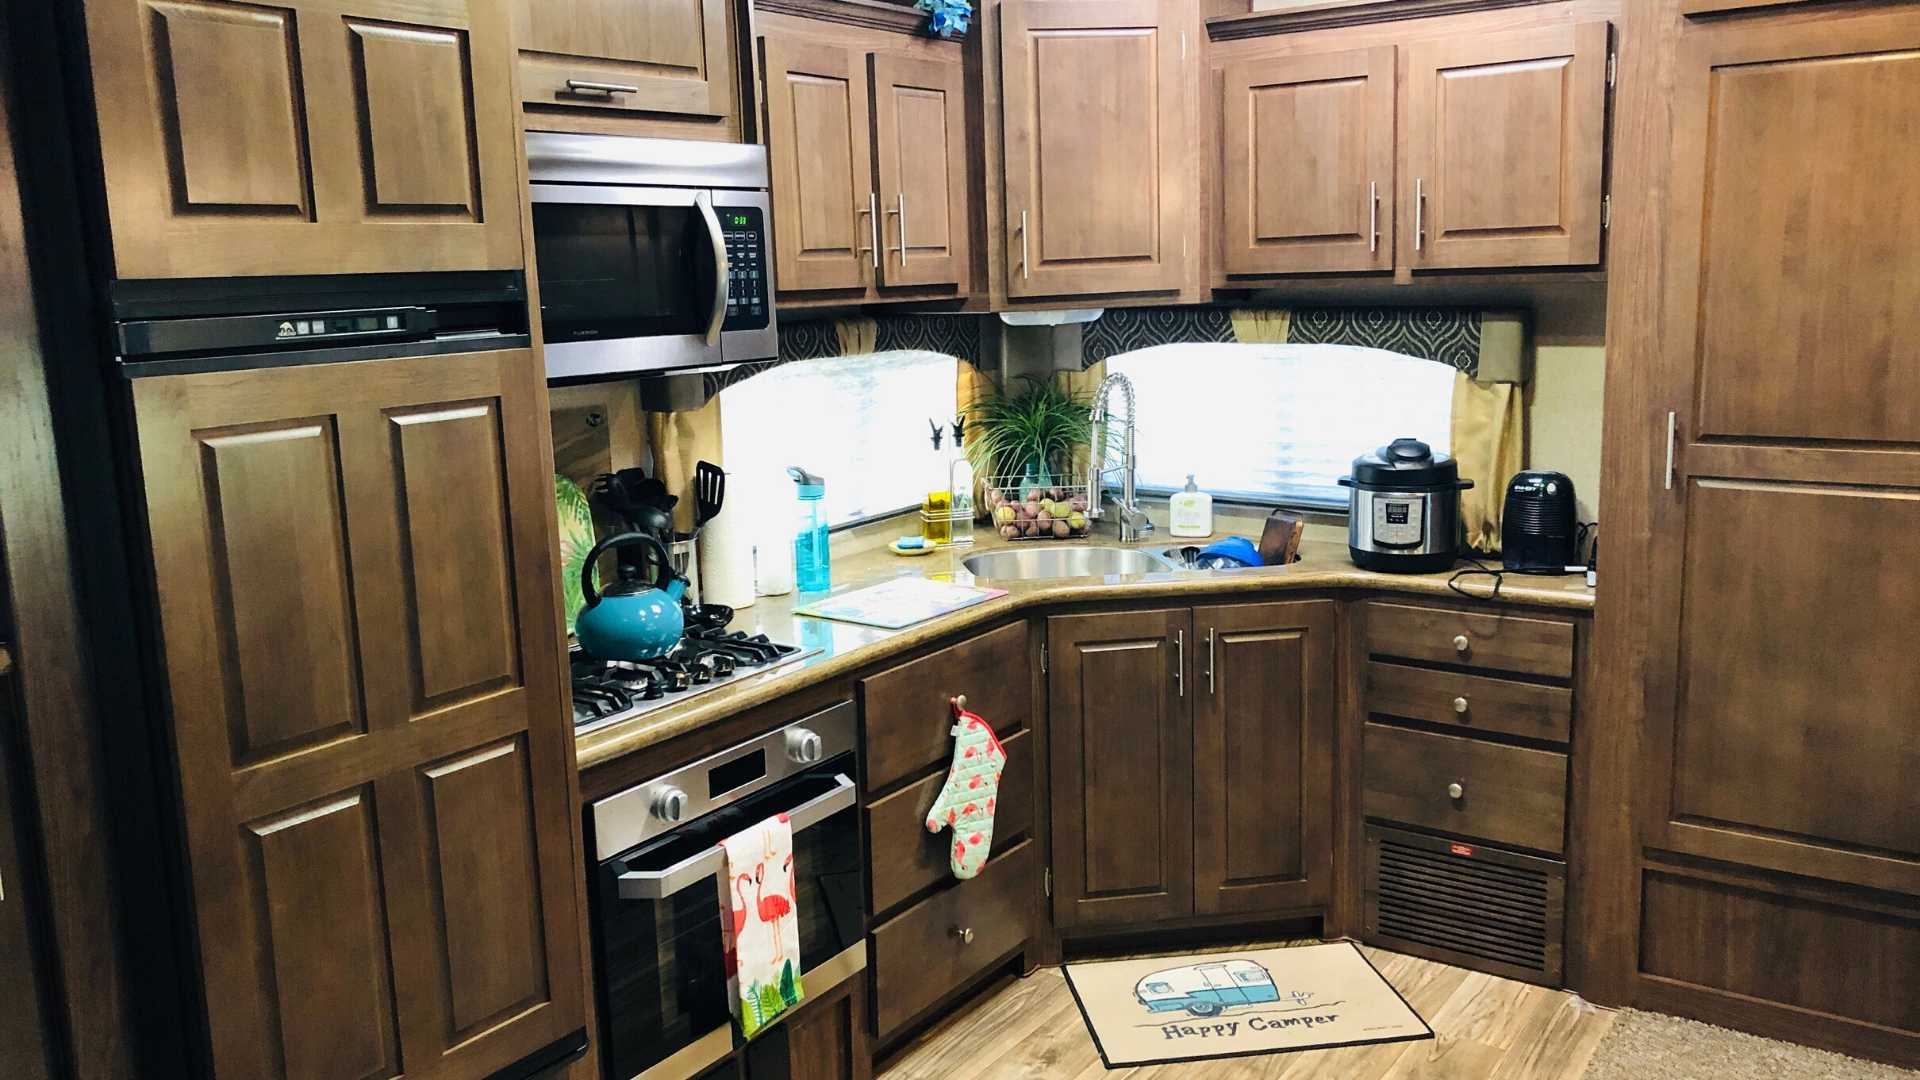 RV kitchen with oven and microwave.